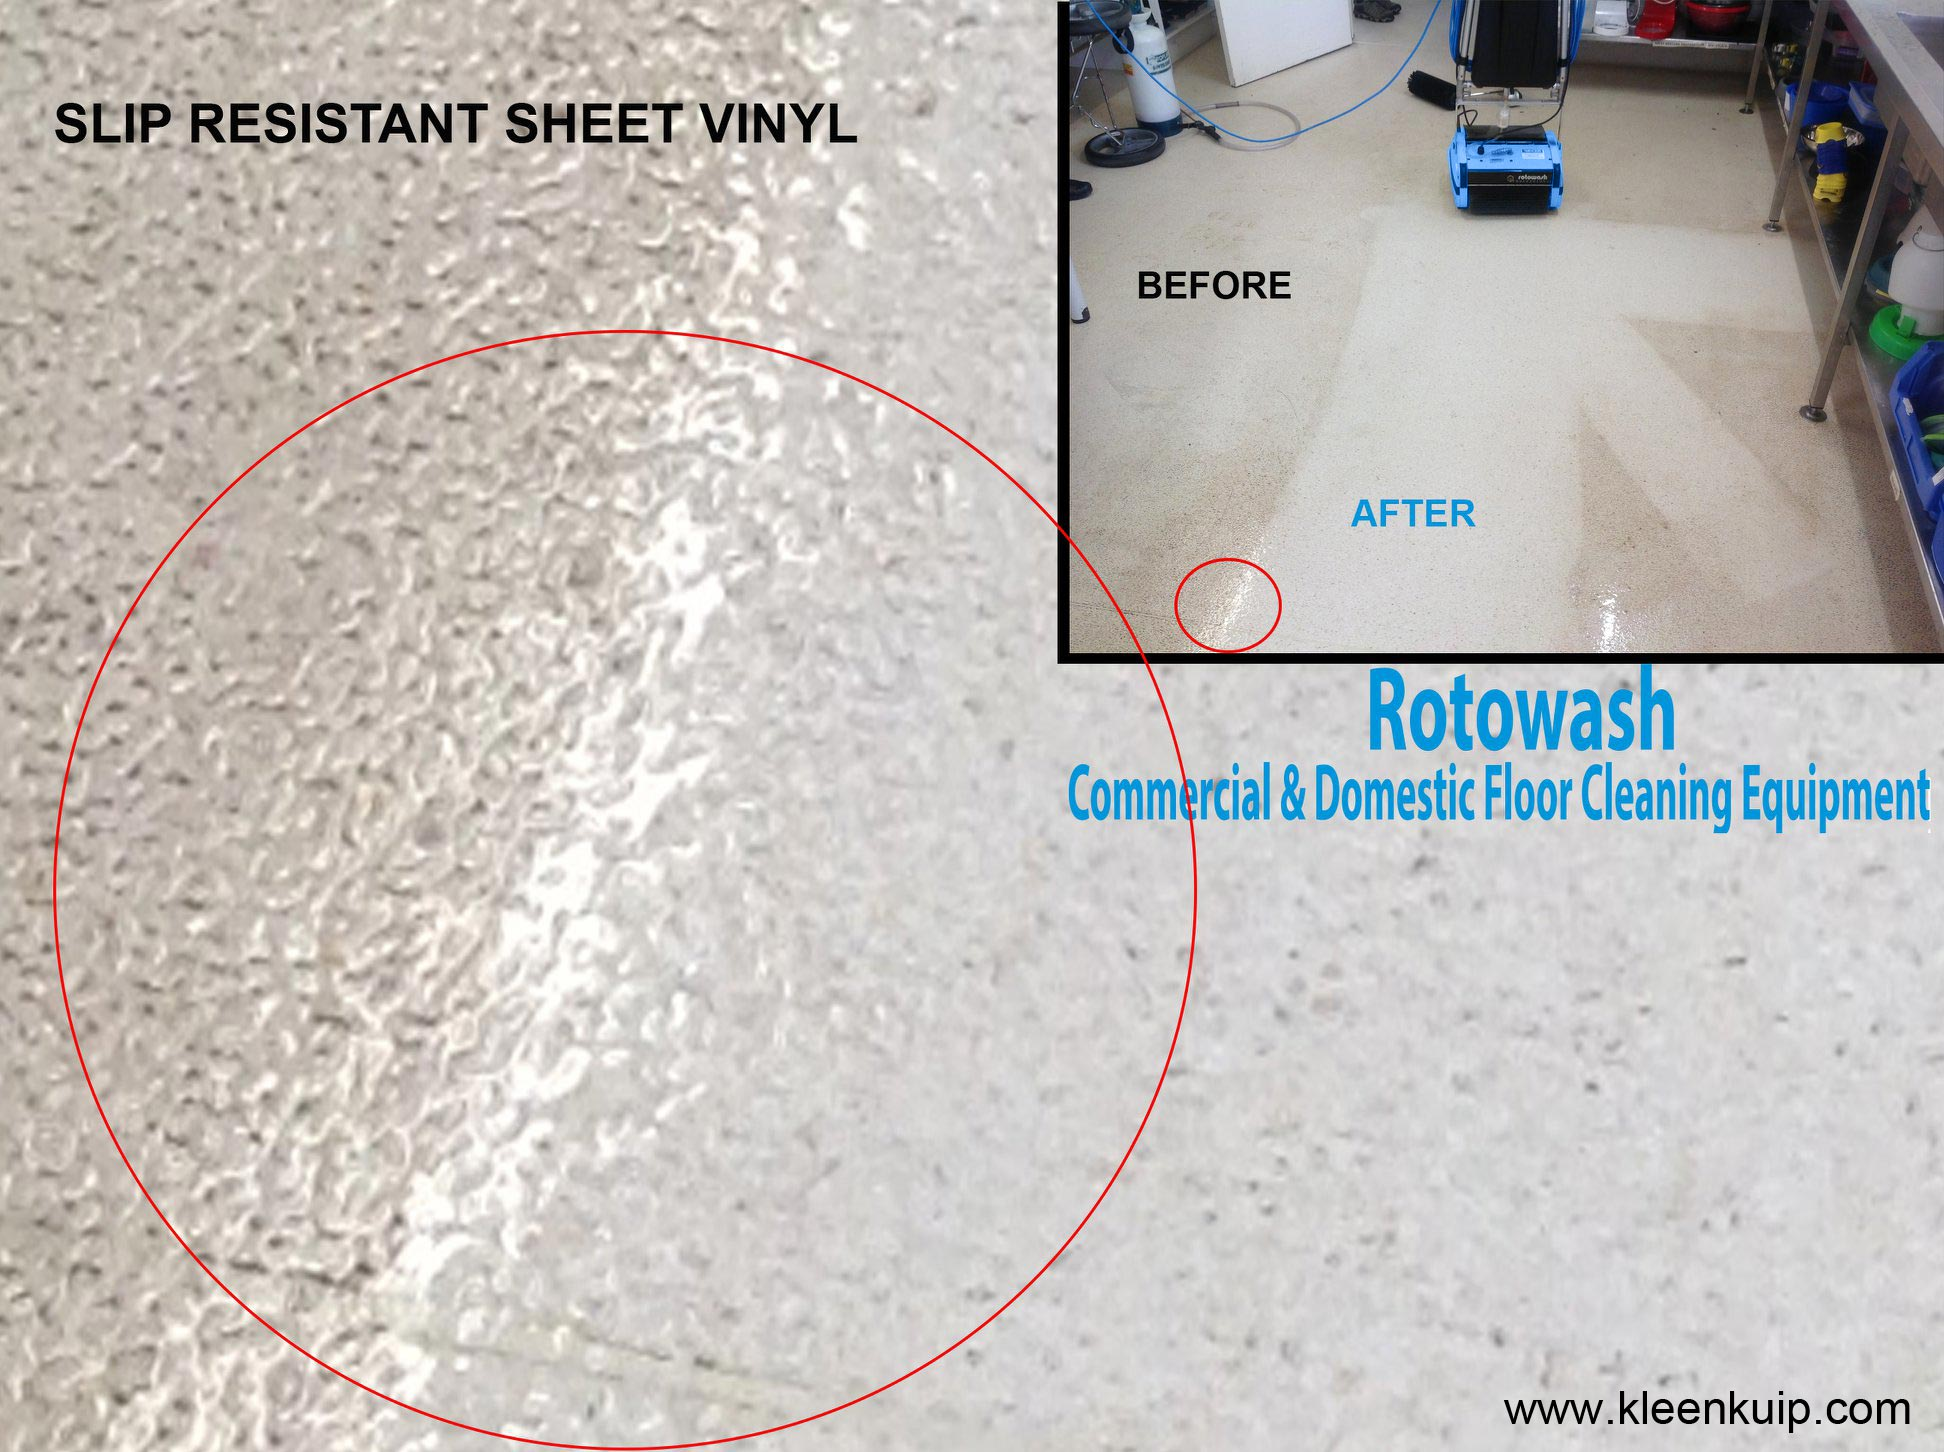 Cleaning Anti Slip Resistant Sheet Vinyl Flooring